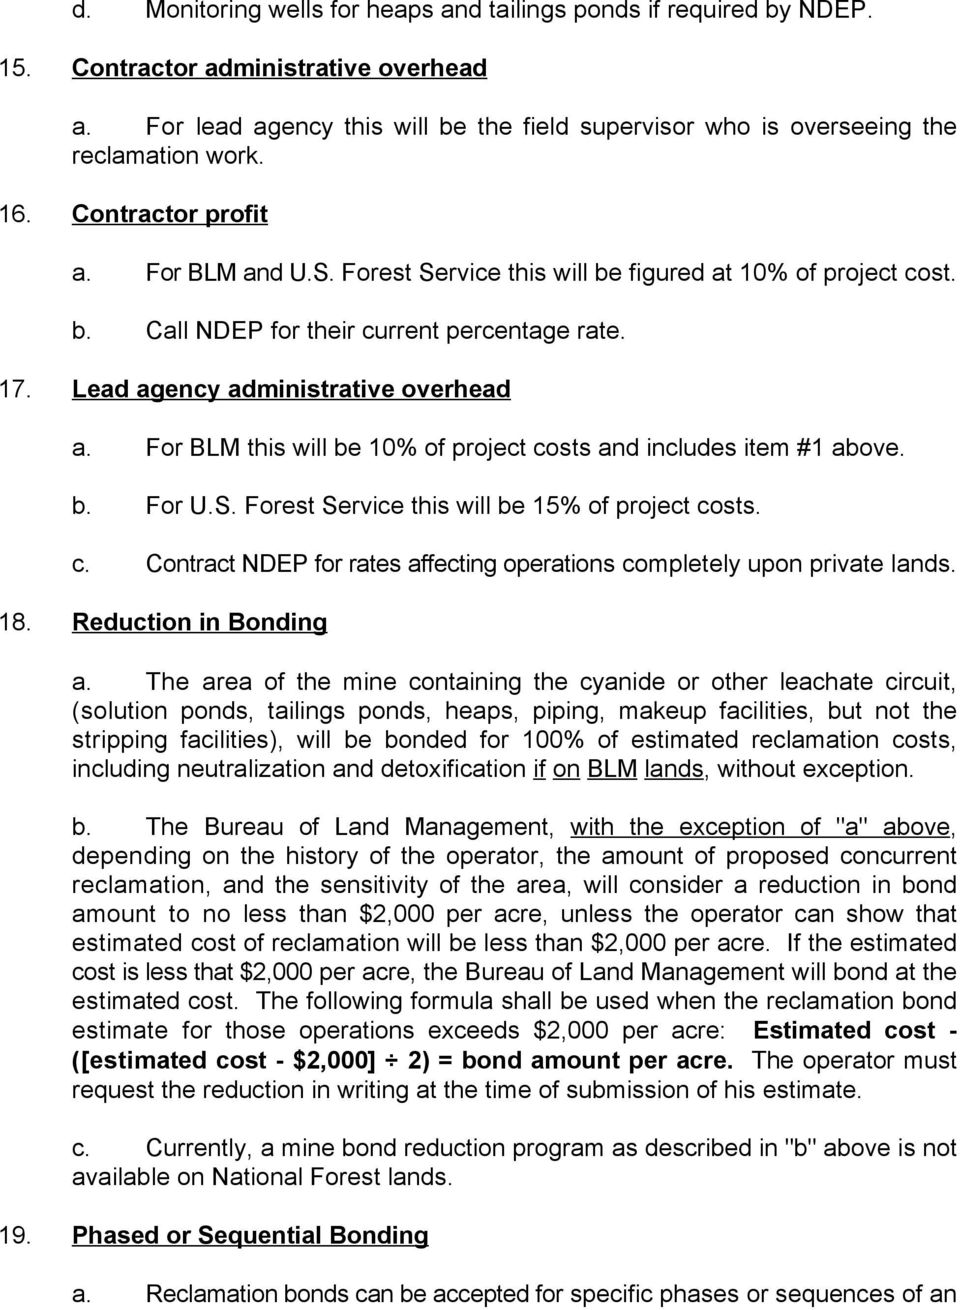 17. Lead agency administrative overhead a. For BLM this will be 10% of project costs and includes item #1 above. b. For U.S. Forest Service this will be 15% of project costs. c. Contract NDEP for rates affecting operations completely upon private lands.